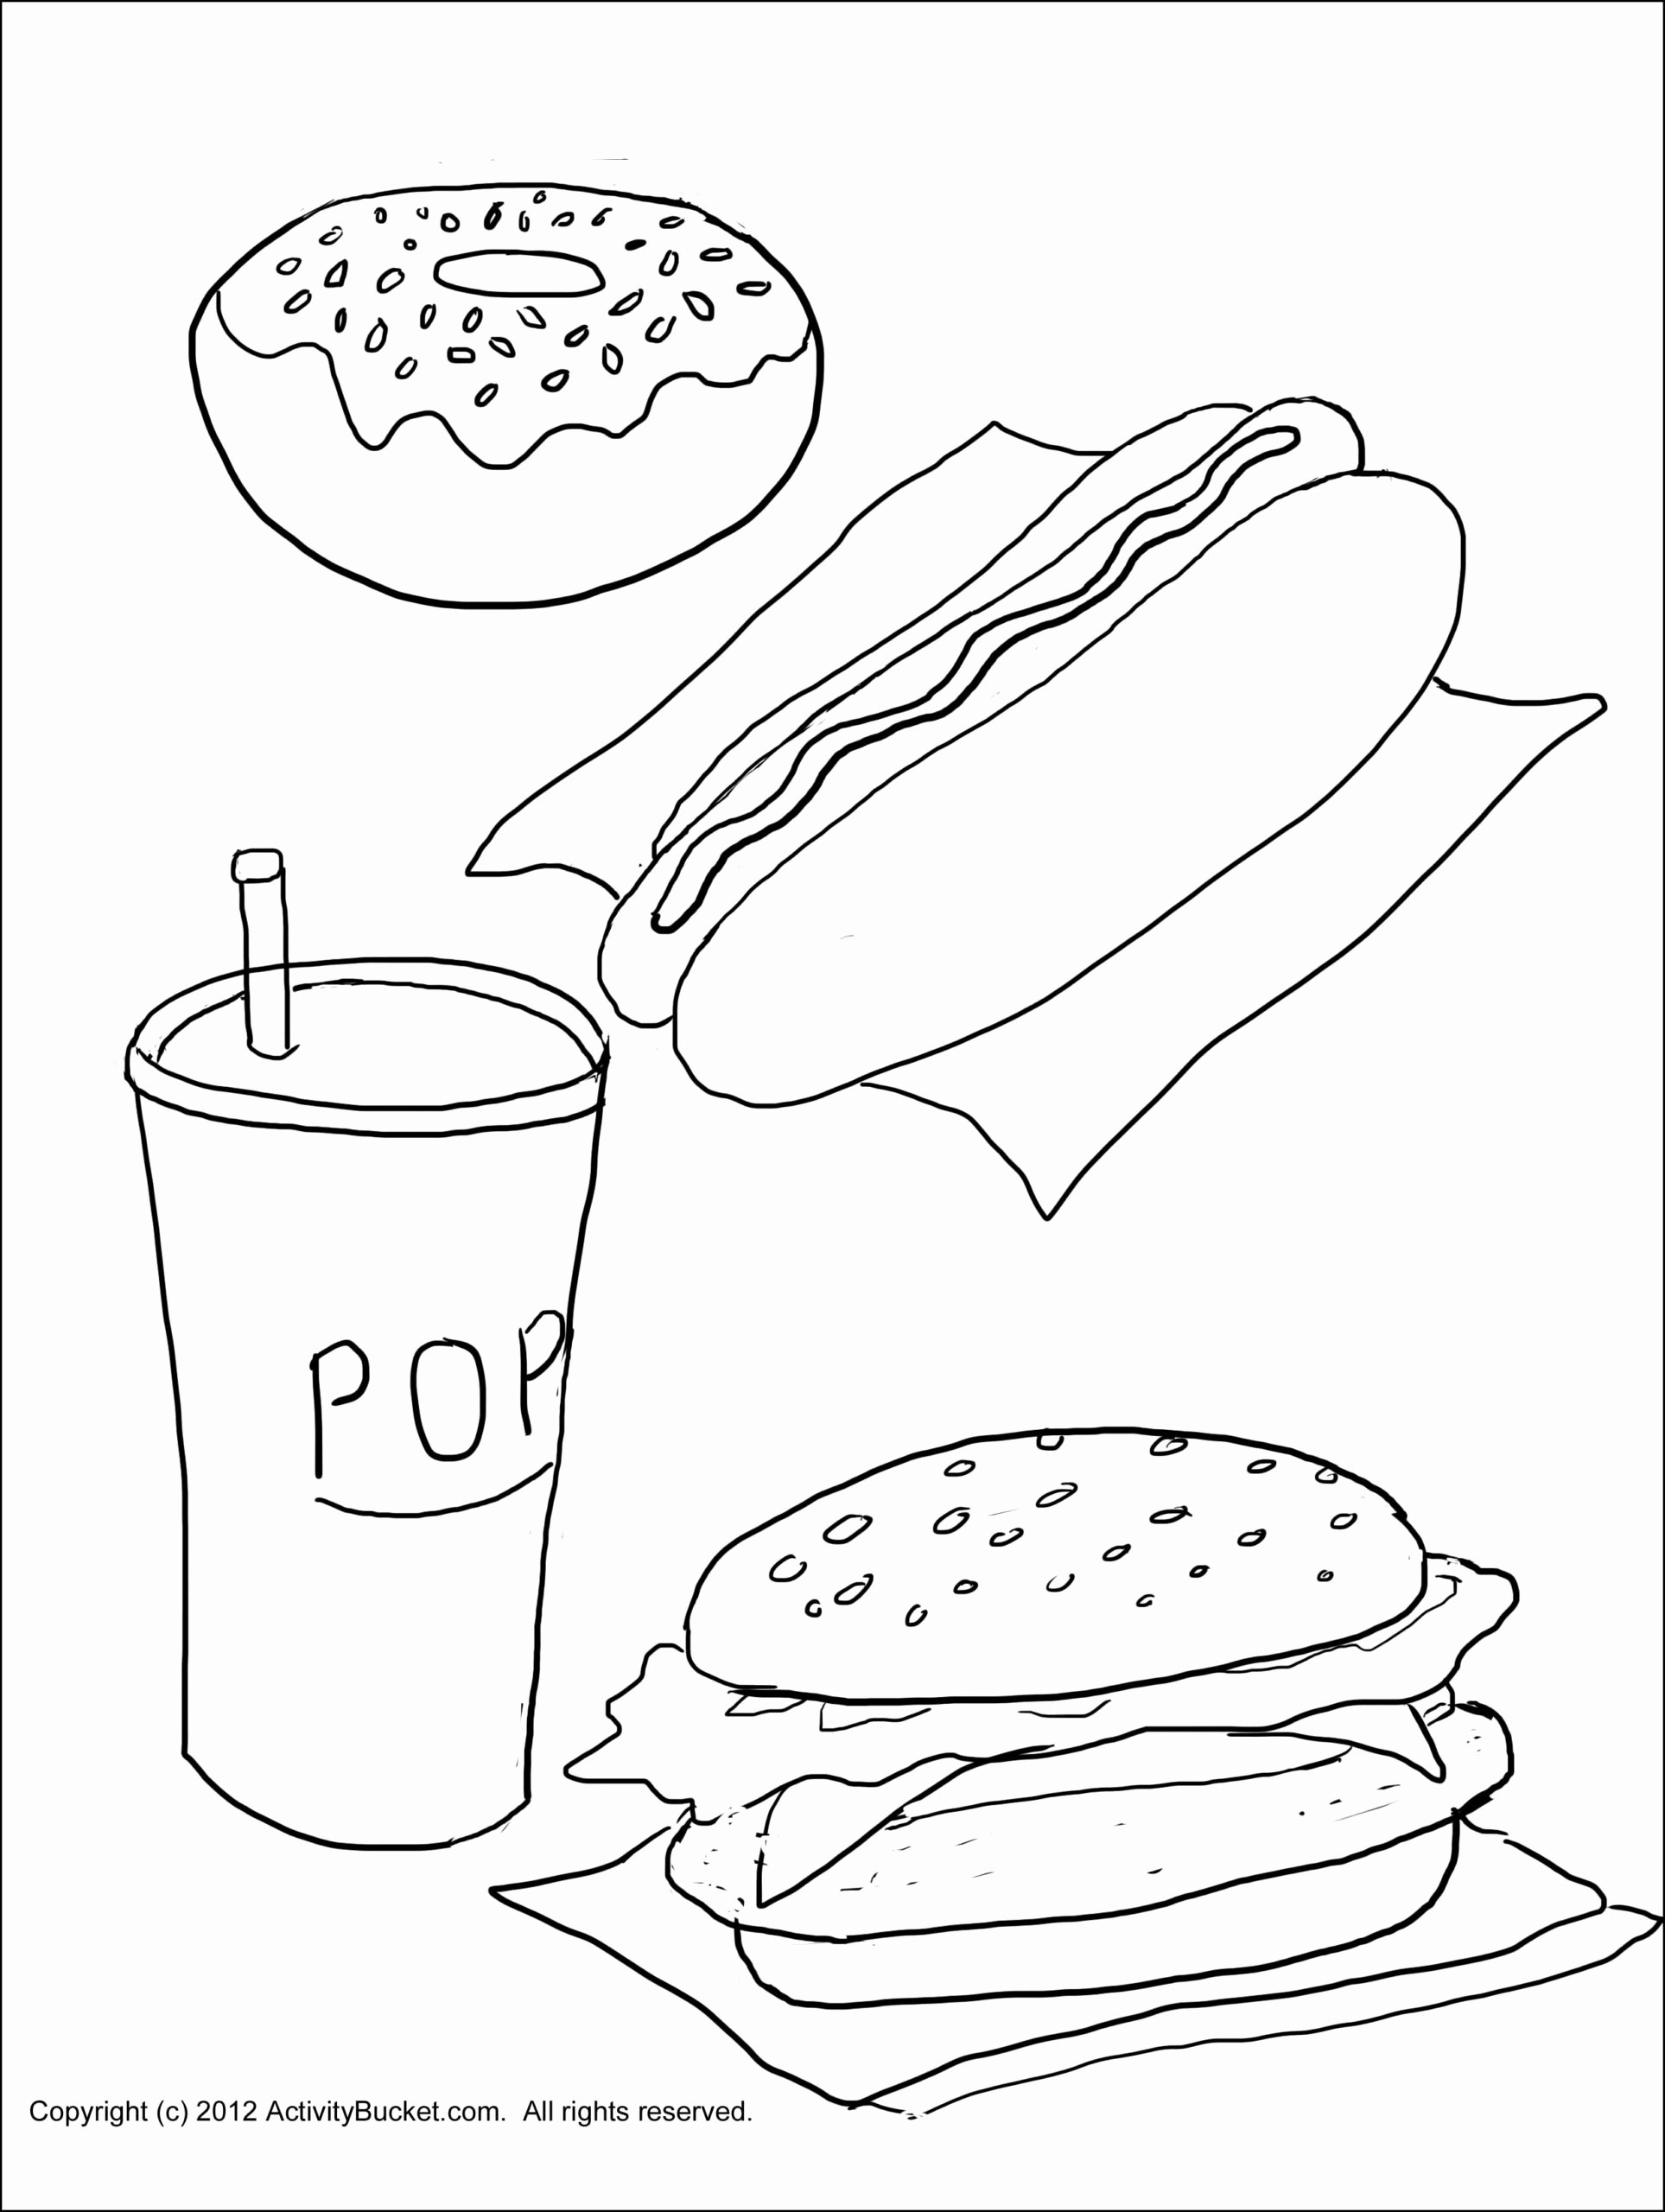 Cognitive Worksheets for Preschoolers Inspirational Healthy and Unhealthy Food Worksheet for Preschool Printable